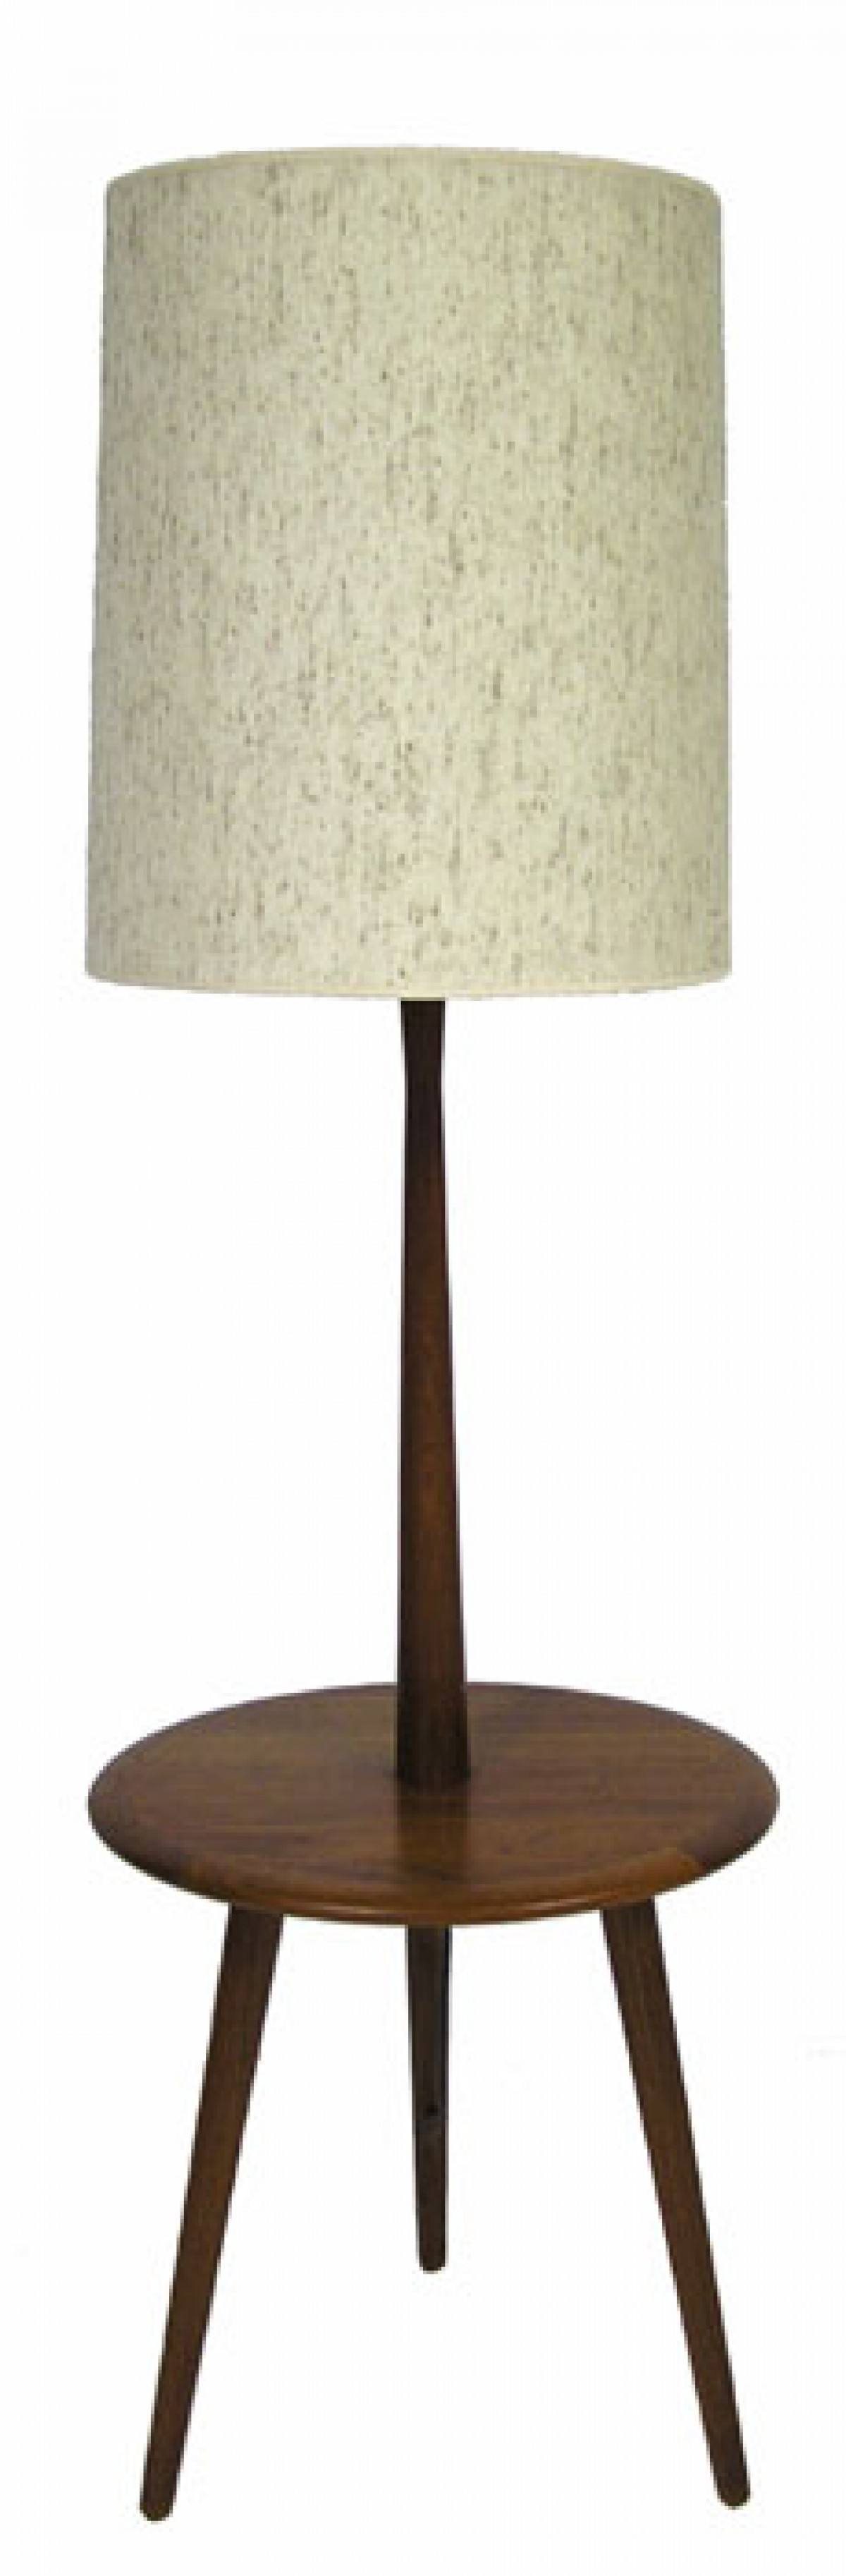 Vintage Table With Lamp Attached : S teak floor lamp w attached table hoopers modern